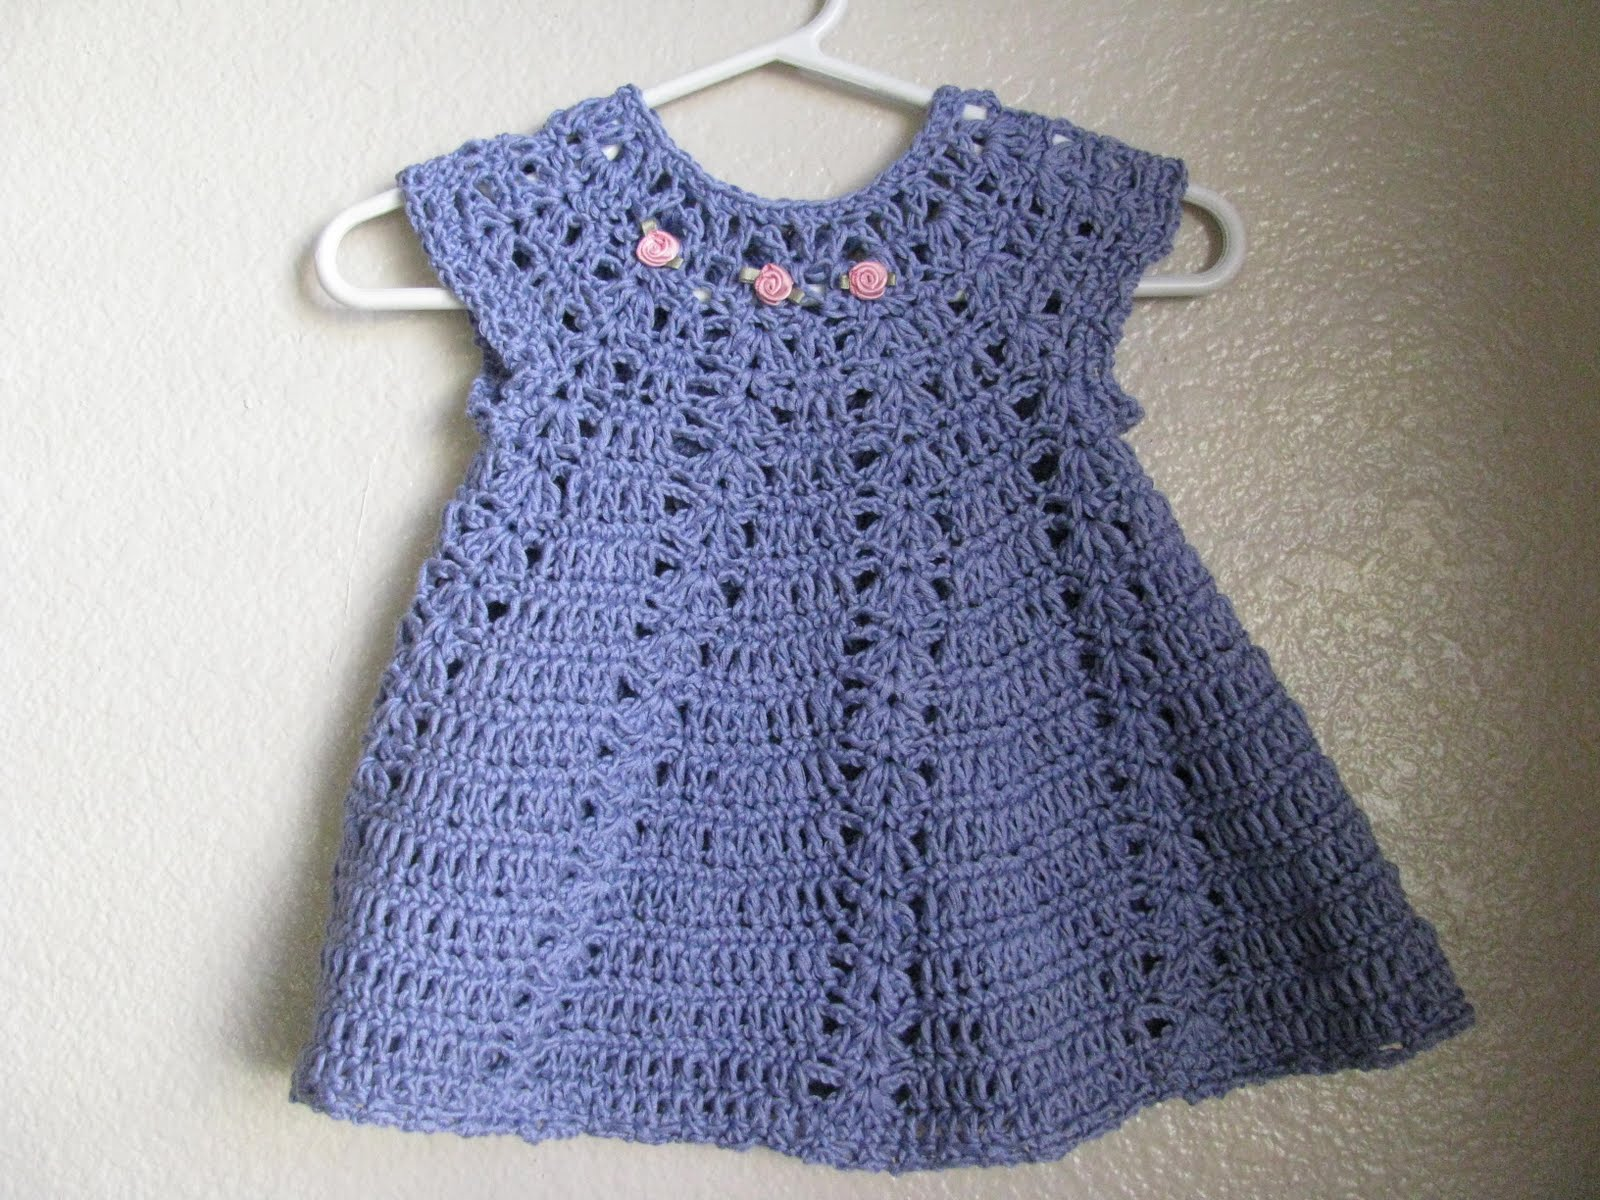 Crochet Patterns Free Dress : BABY CROCHET DRESS PATTERN PINEAPPLE Crochet Patterns